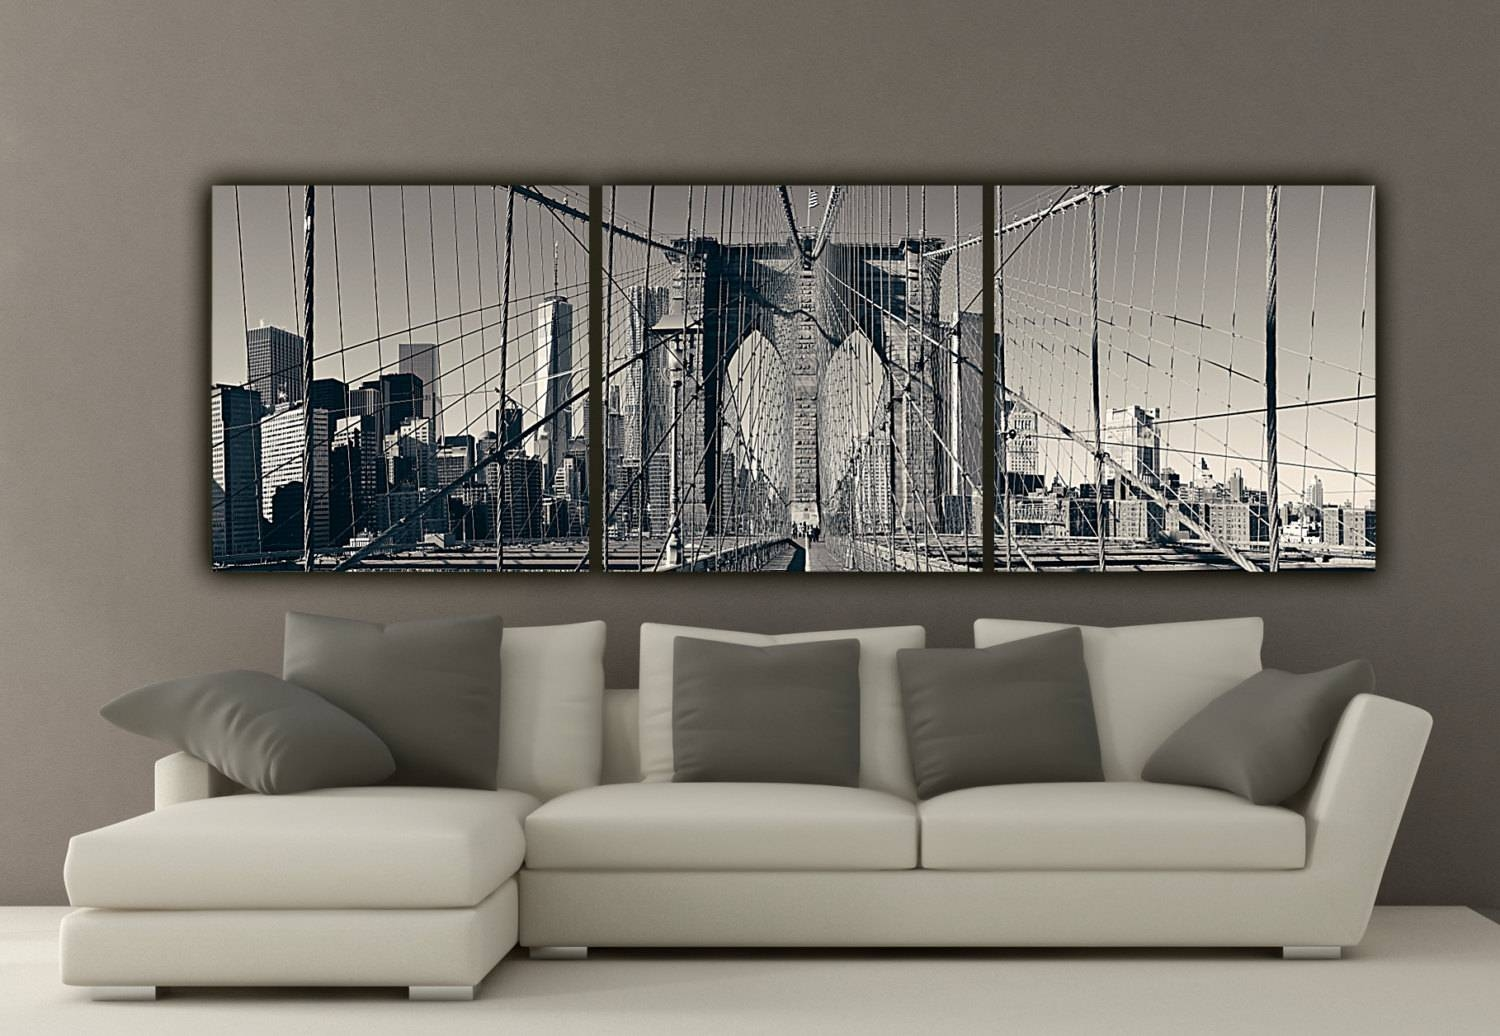 New York Brooklyn Bridge Canvas Wall Art Black And White New Throughout Current Brooklyn Bridge Metal Wall Art (View 10 of 25)